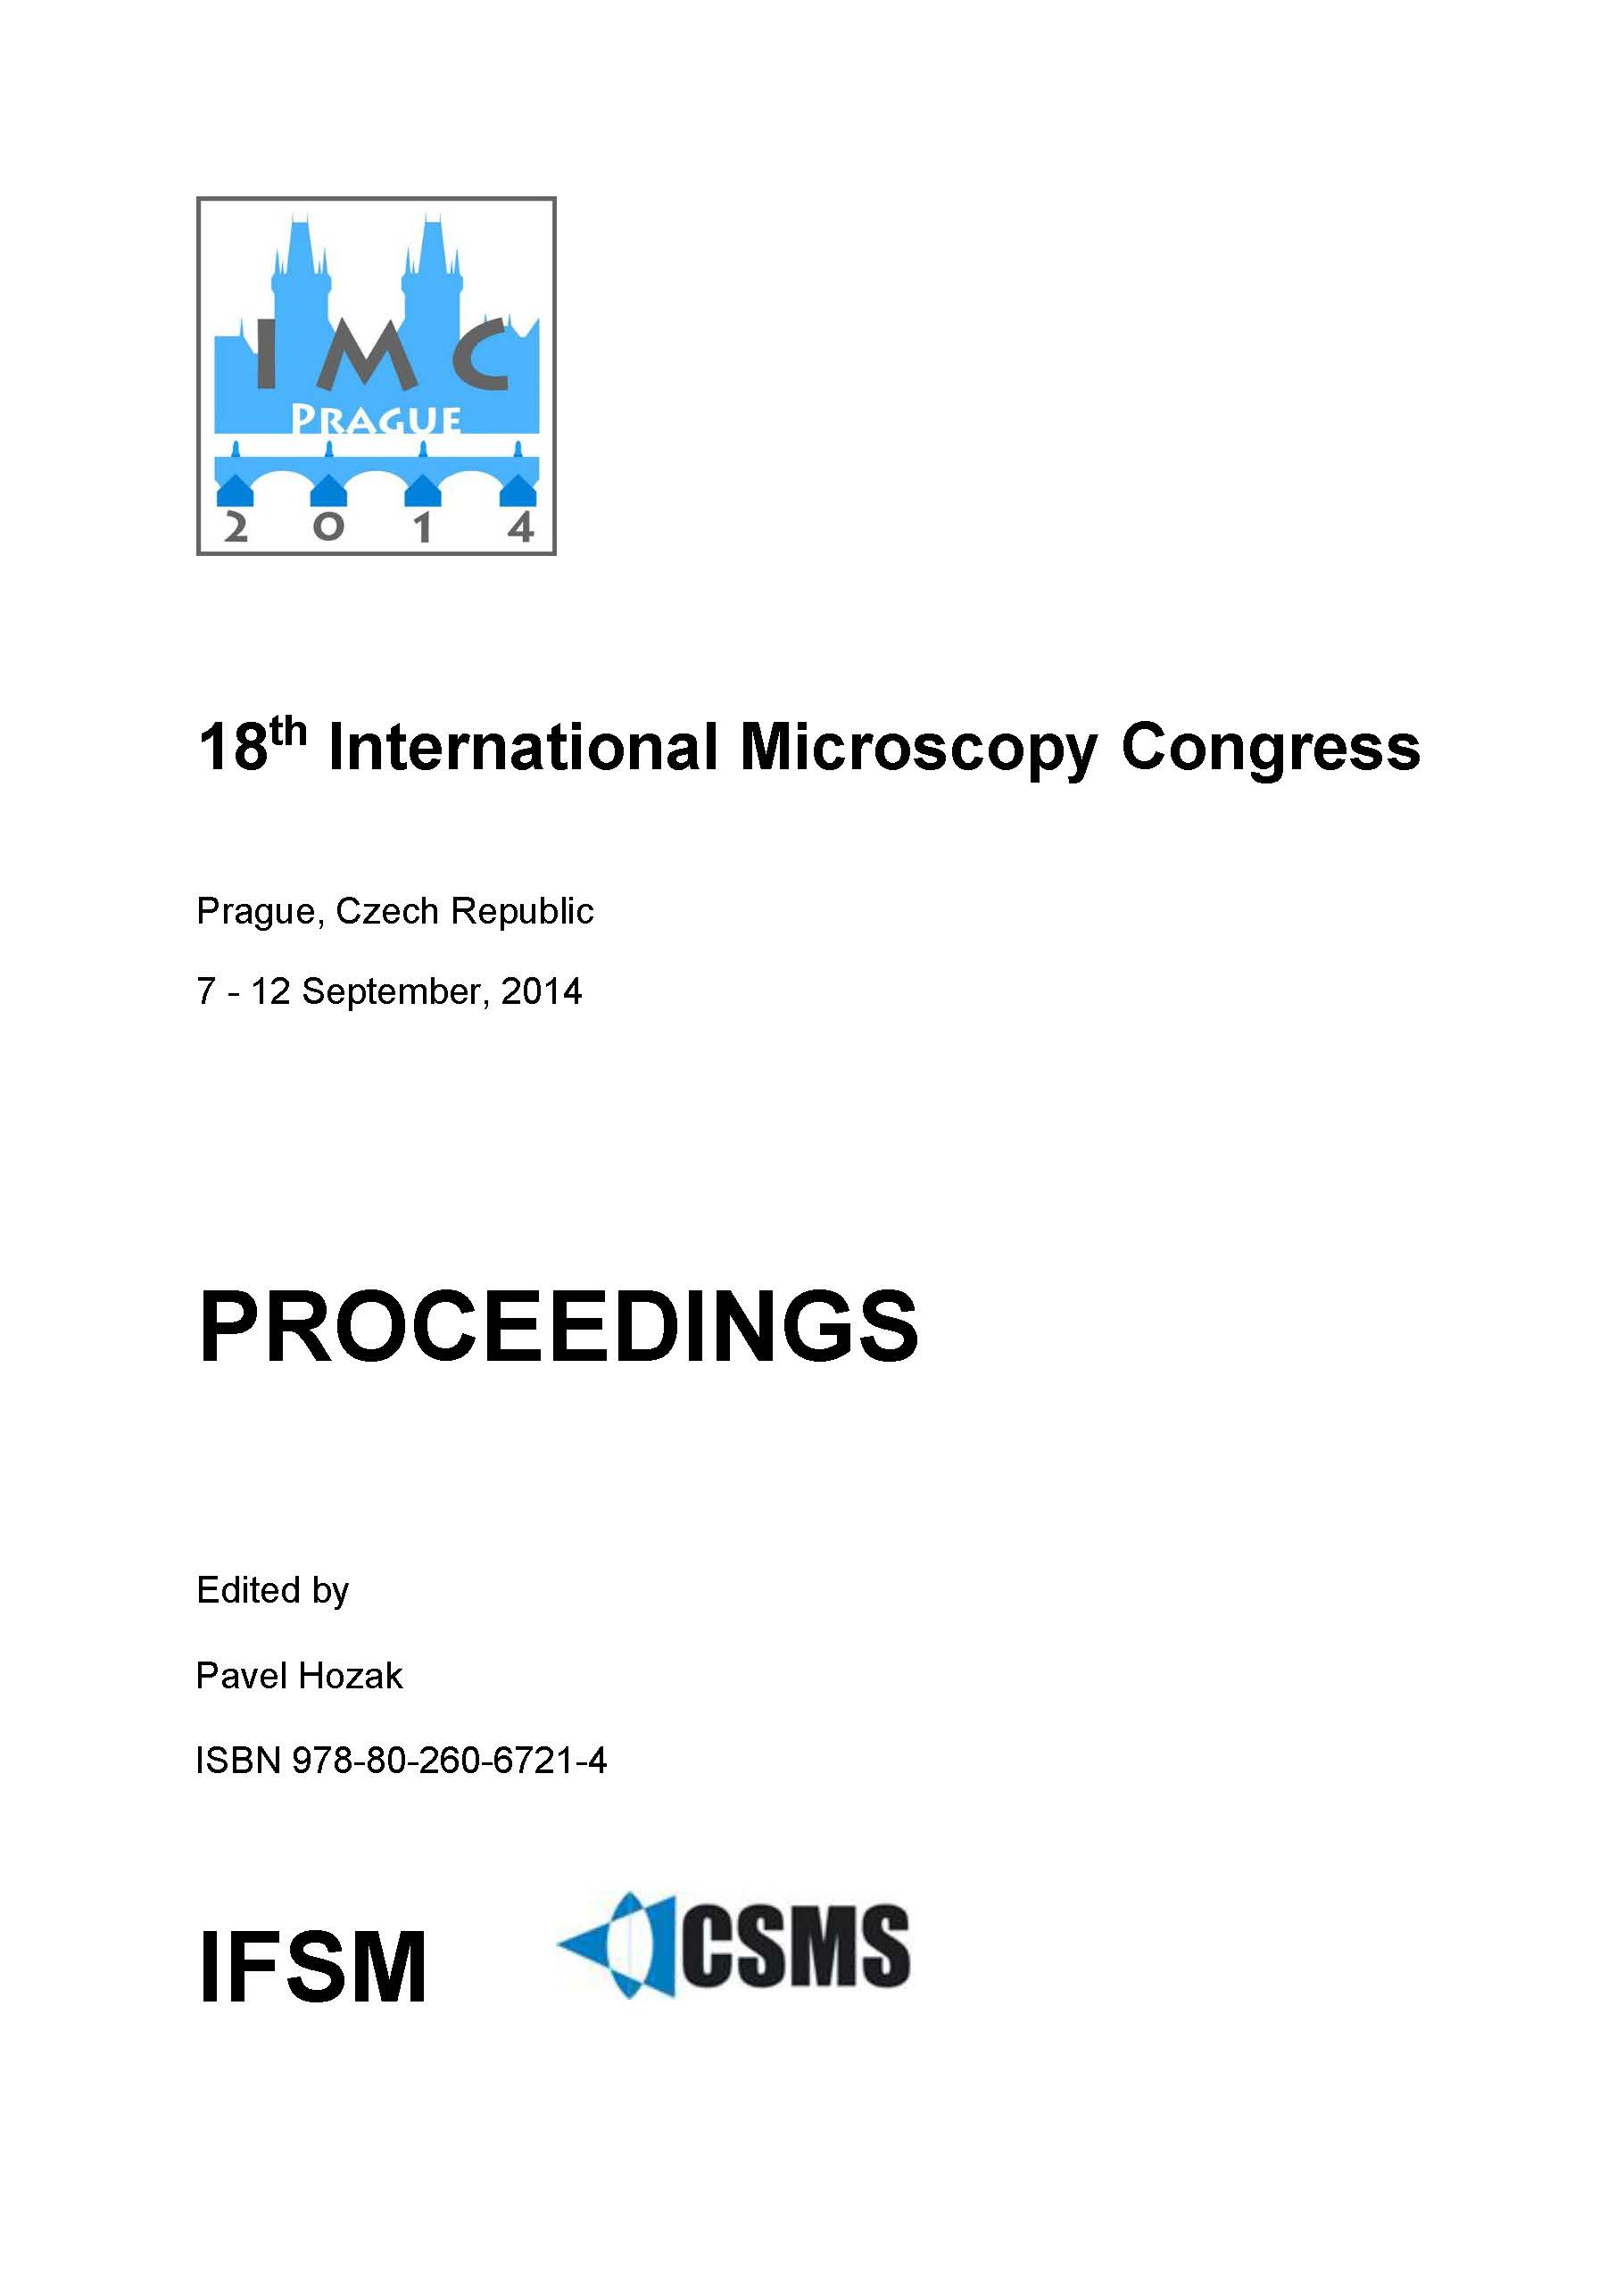 18th International Microscopy Congress Proceedings 3c9fbcc141c5